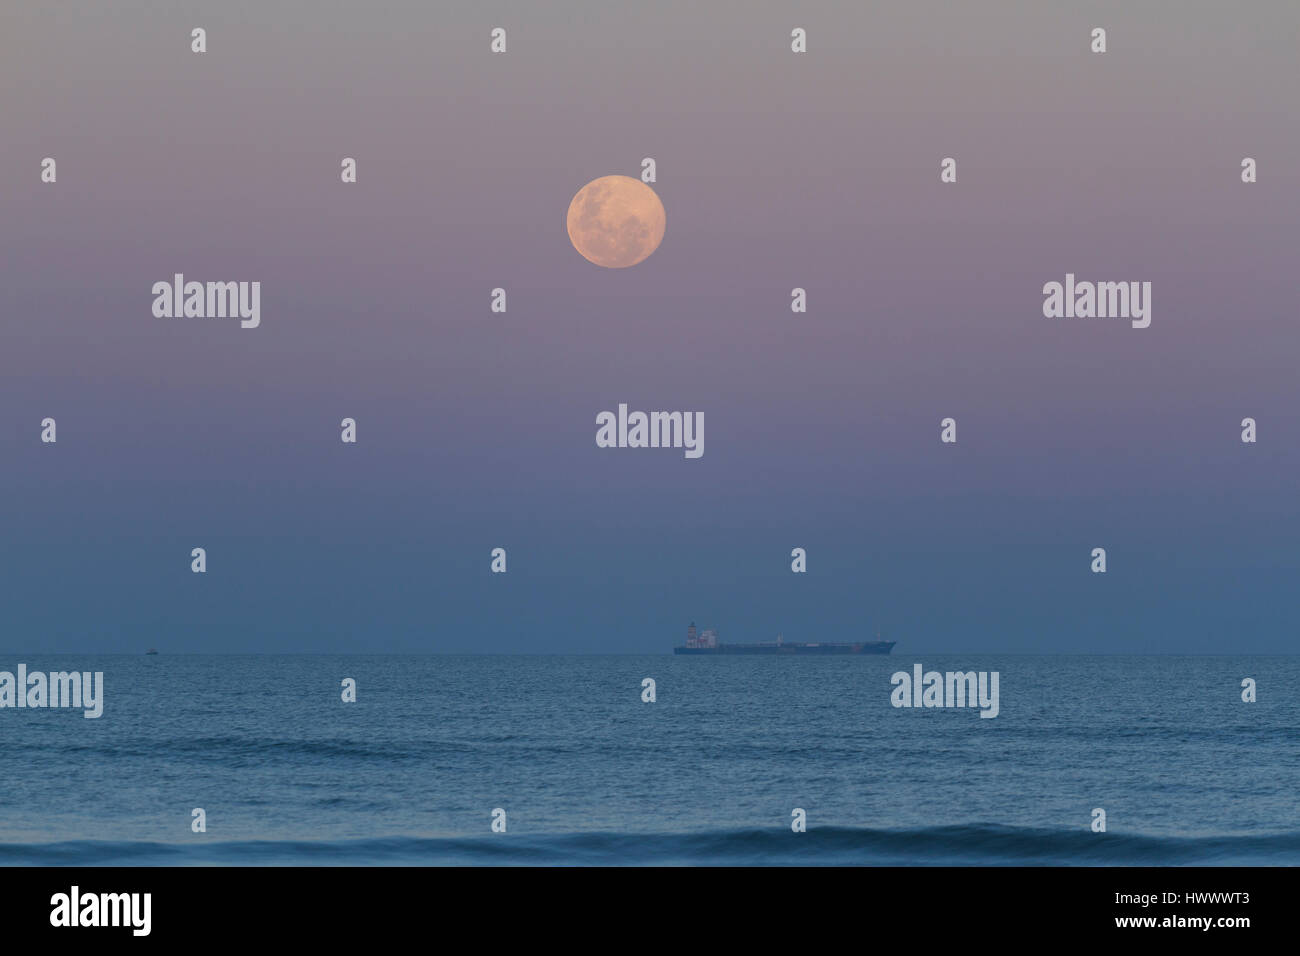 Record of the super moon on a beautiful weekend. Stock Photo